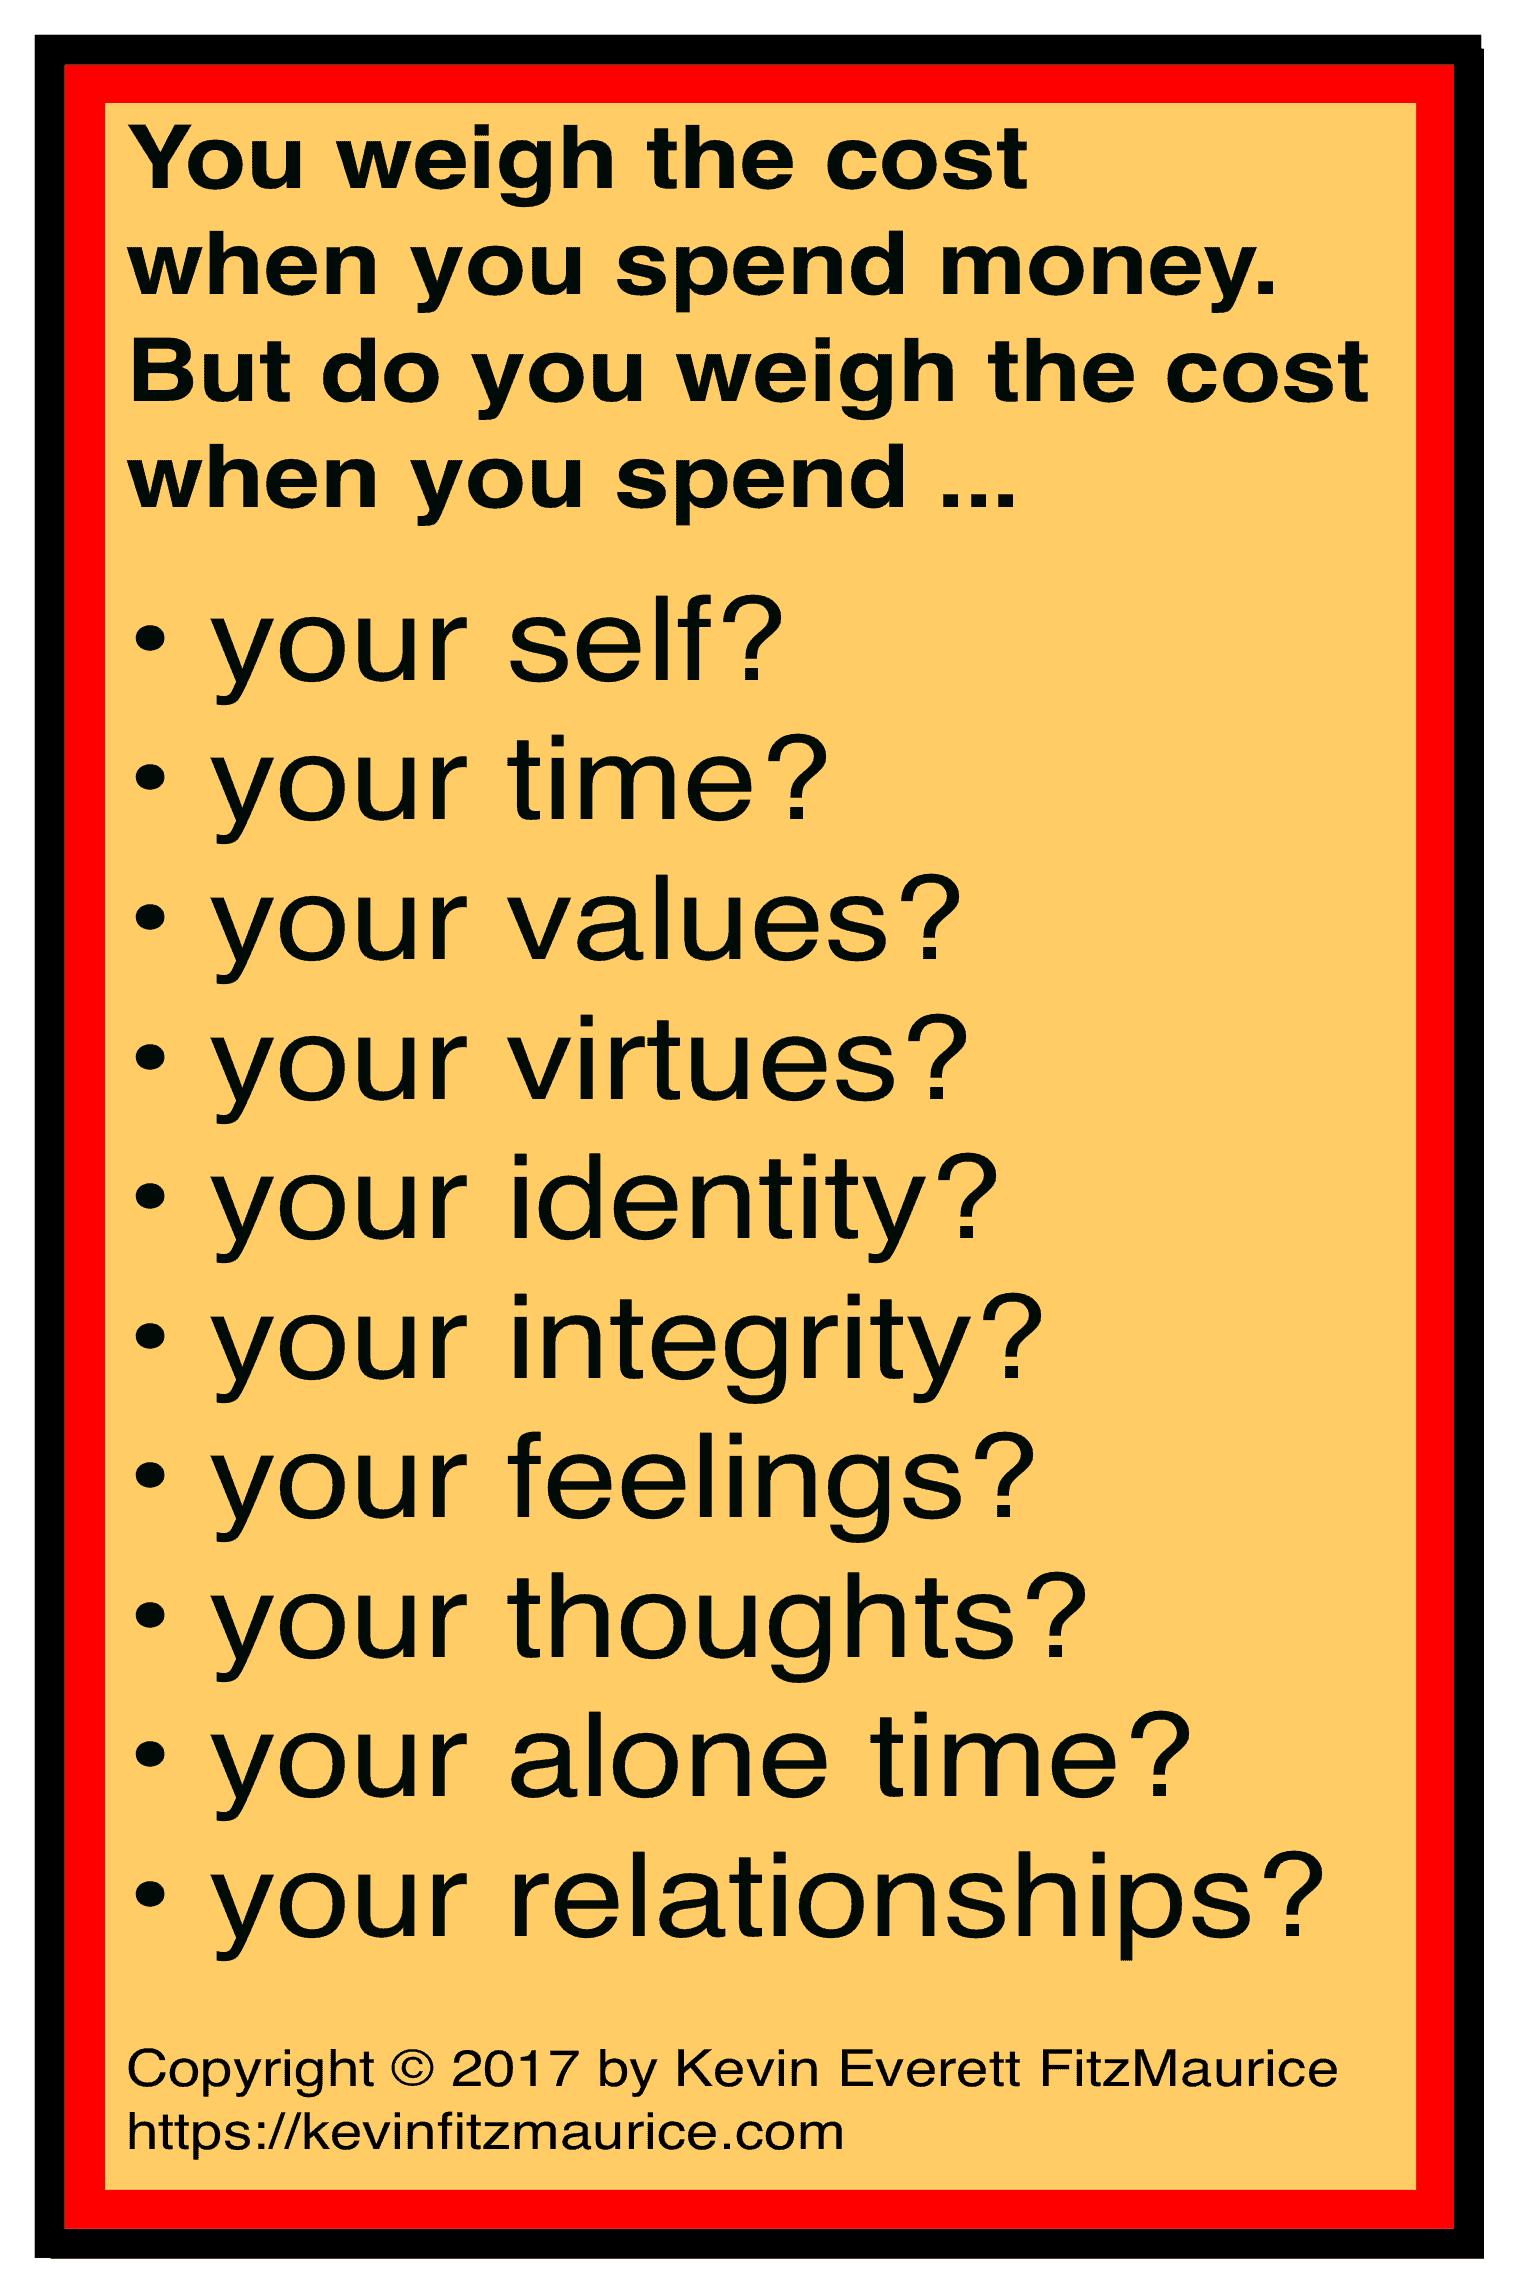 Do you weigh the cost of spending your self?